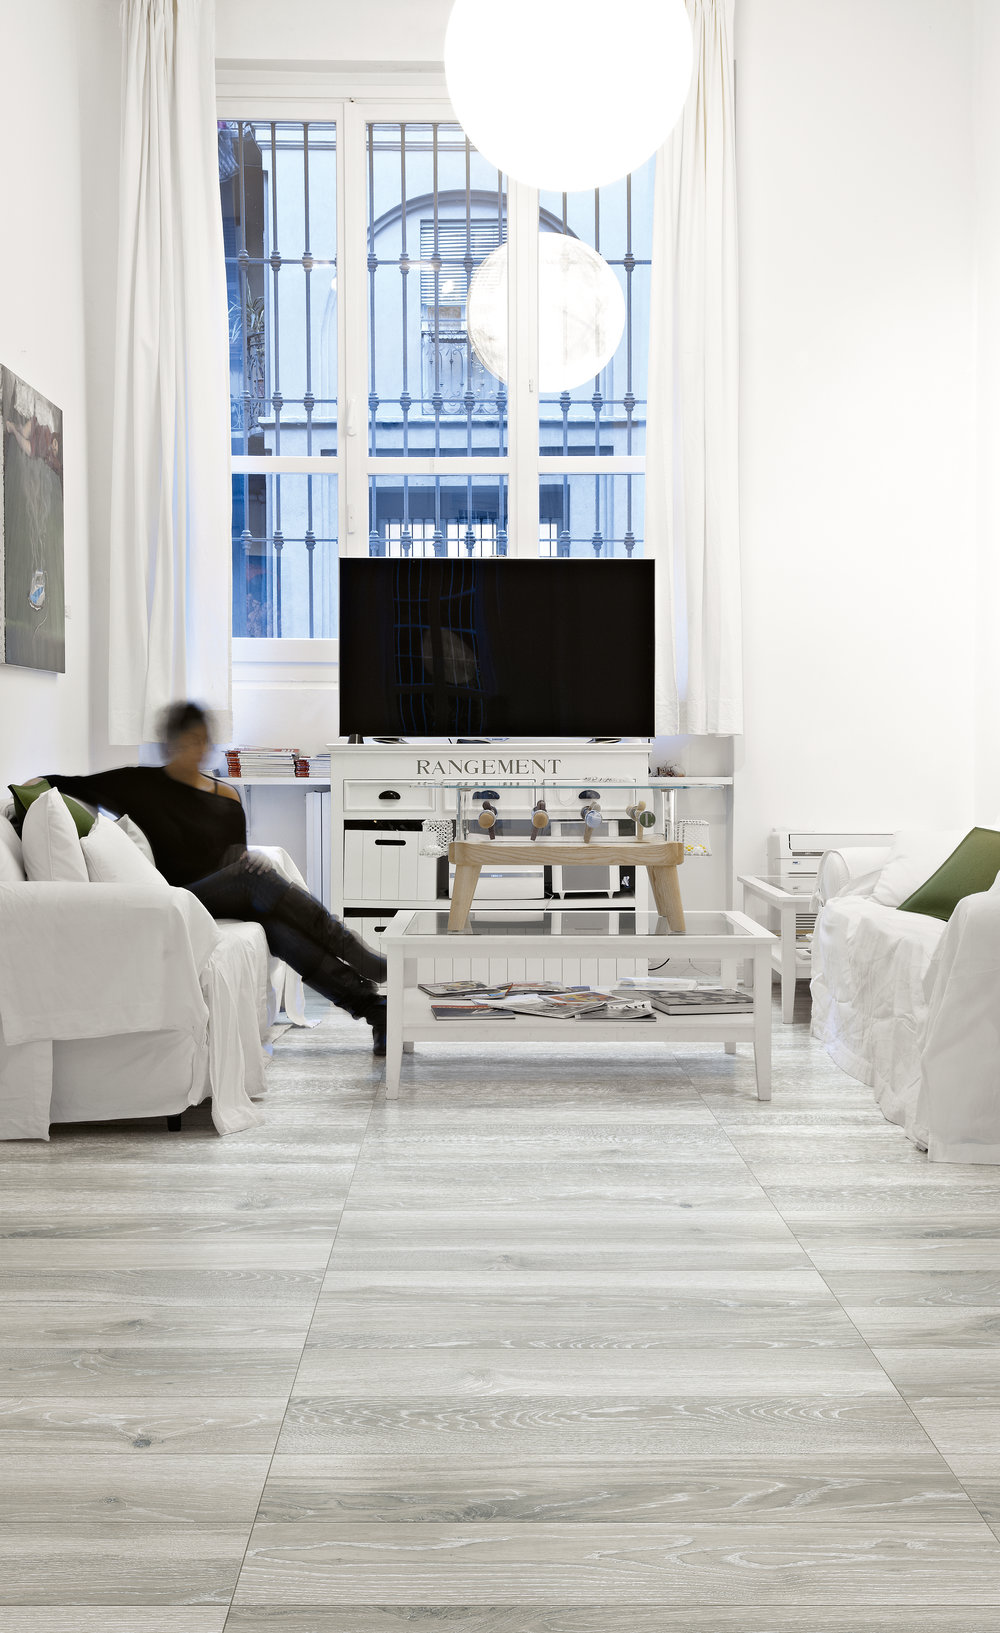 Why Use Porcelain Tile? - There are many reasons to choose impervious porcelain tile over other floor coverings. With a wide array of design options and an unmatched durability, porcelain tile is the least expensive option over the lifetime of a building with a 60+ year life expectancy.Porcelain is:- Durable- Impervious to water- Resistant to germs, bacteria and mold- Scratch resistant- Fade resistant- Fire resistant- Easy to maintain and clean